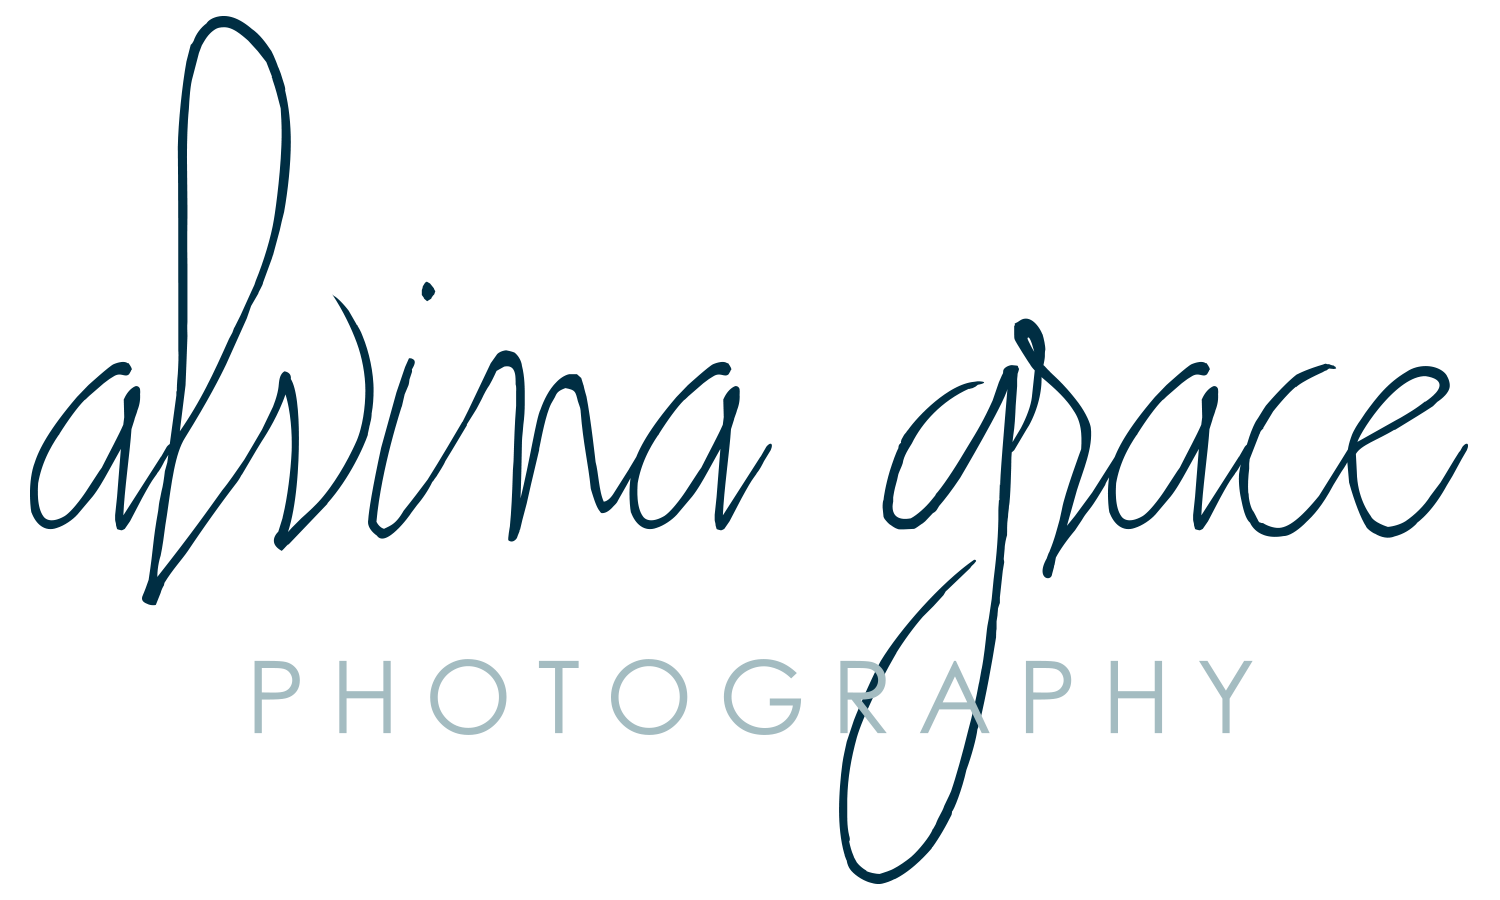 Alvina Grace Photography